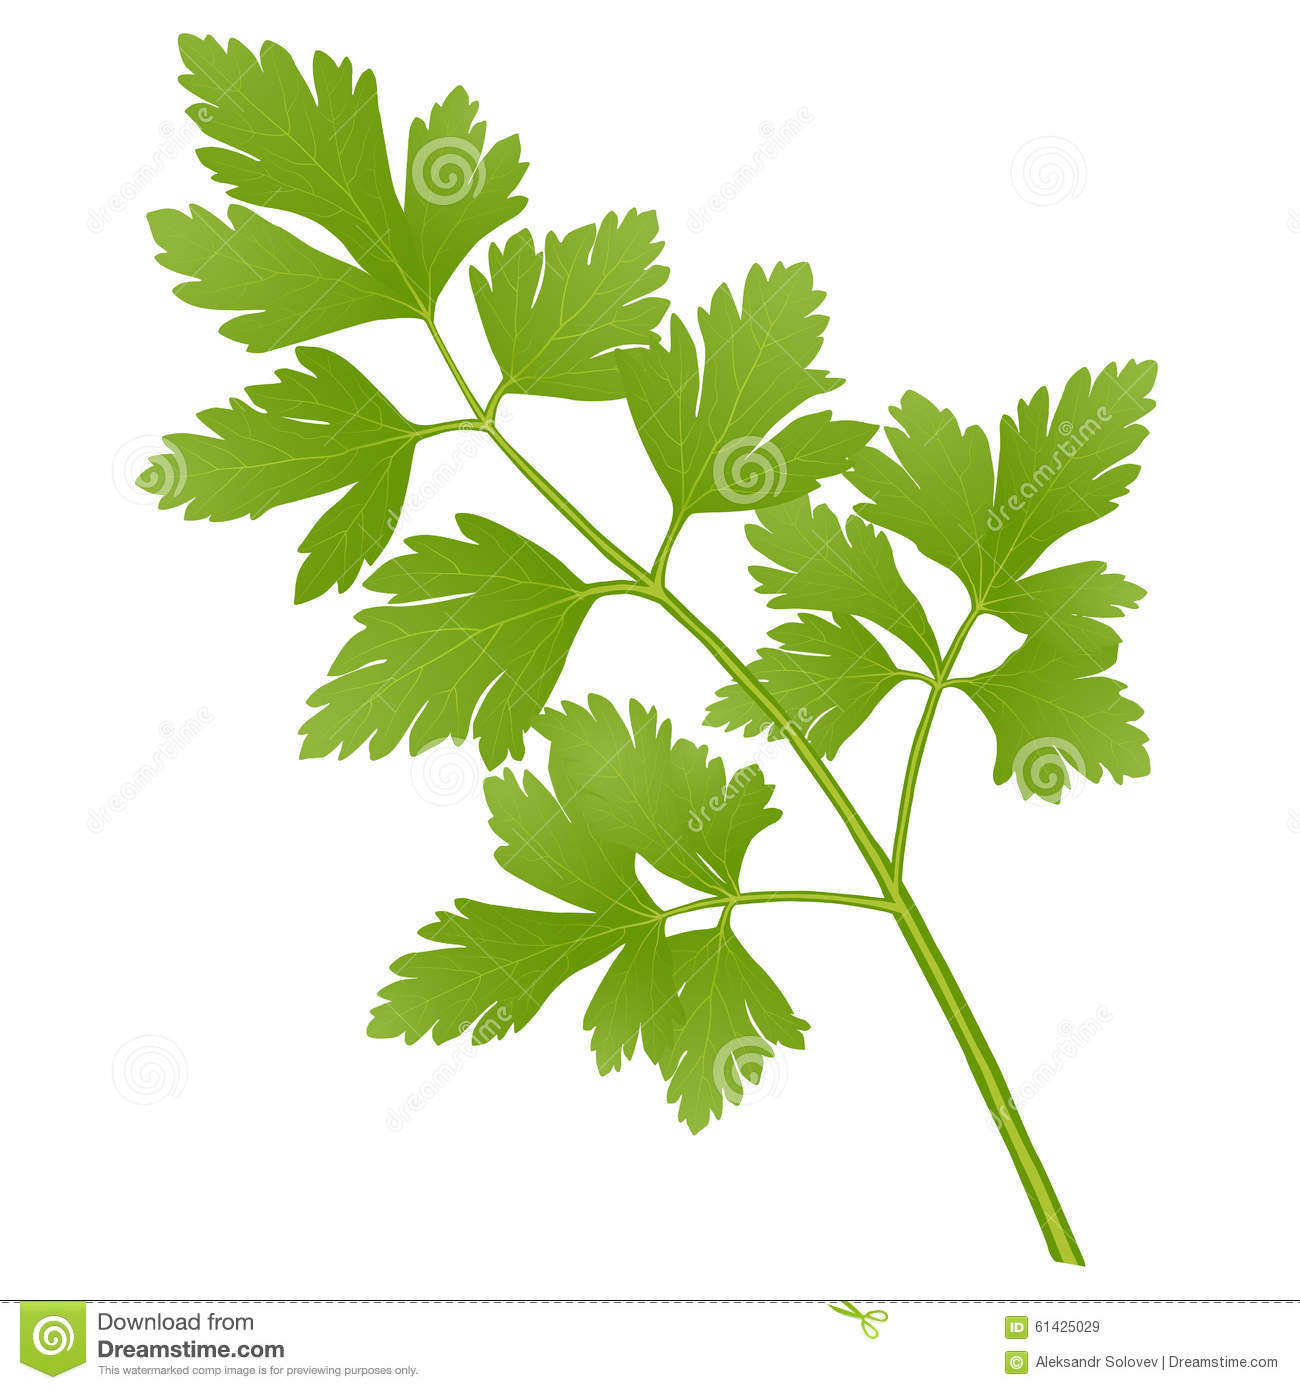 Parsley Illustration Parsley Stock Vector -...